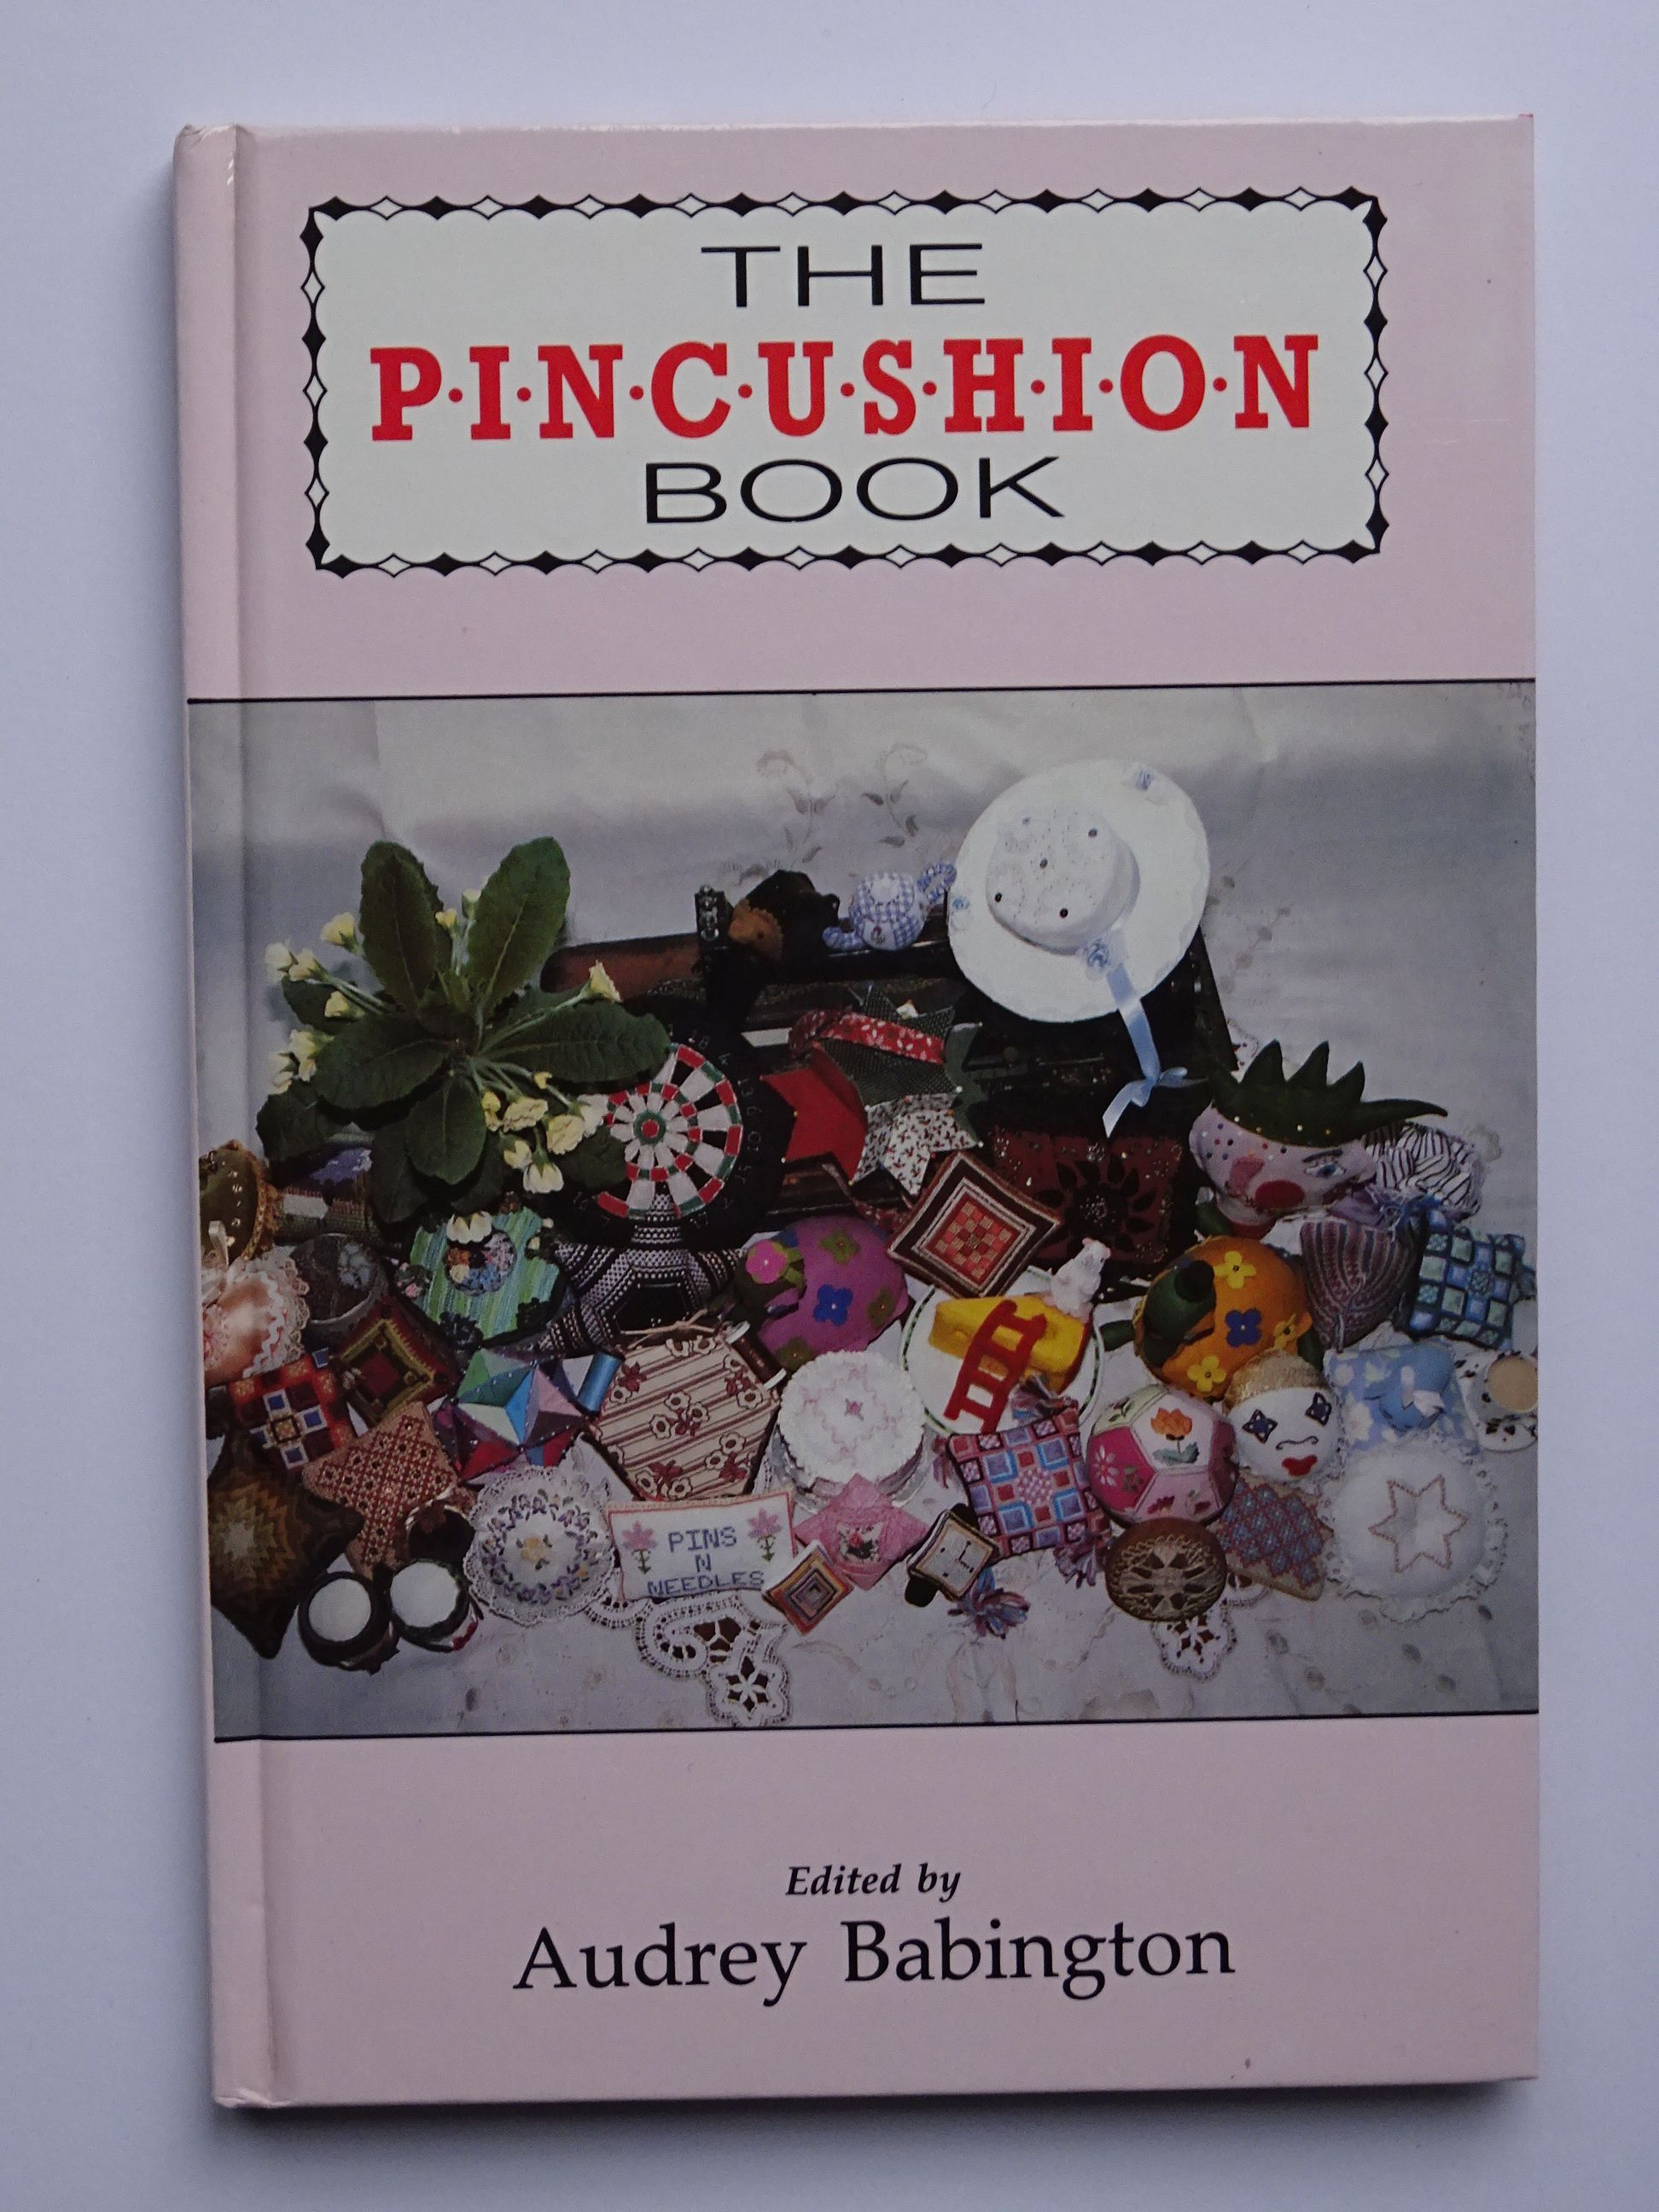 Babington,Audrey – The Pincushion Book